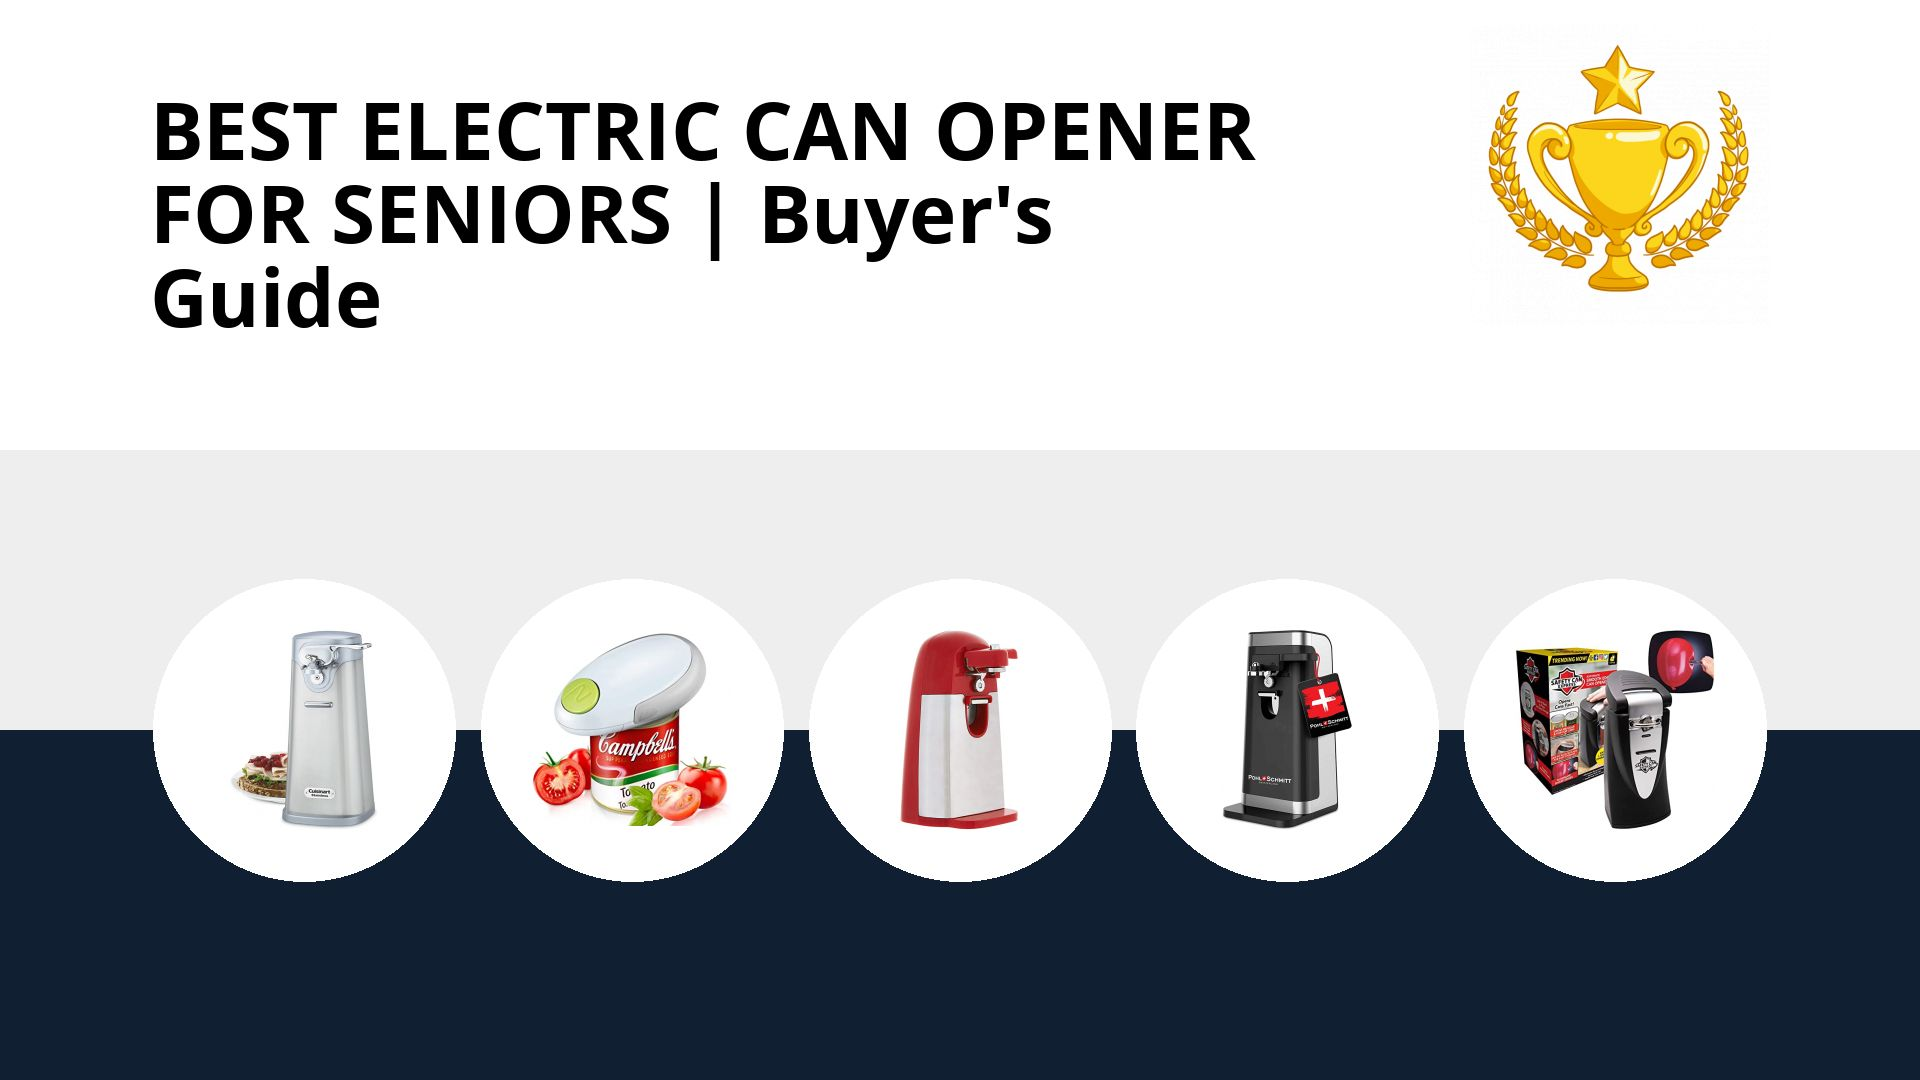 Best Electric Can Opener For Seniors: image